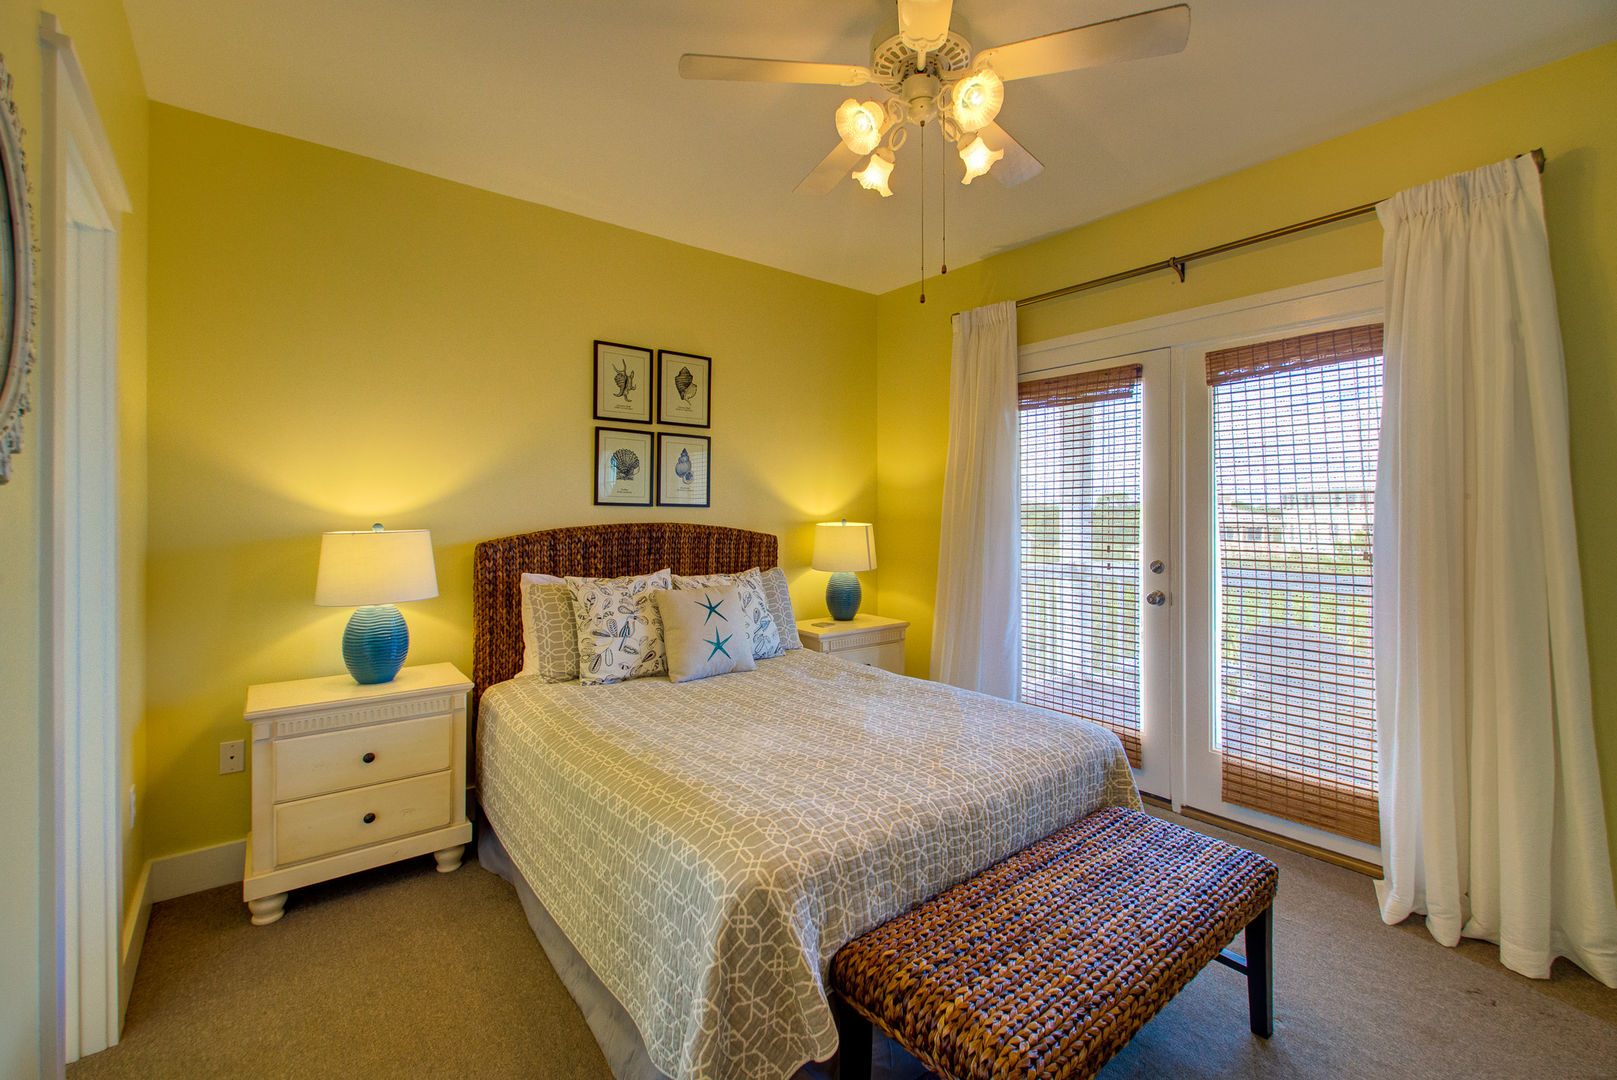 Large Bed, Nightstands, Lamps, Doors to the Balcony, and Ceiling Fan.